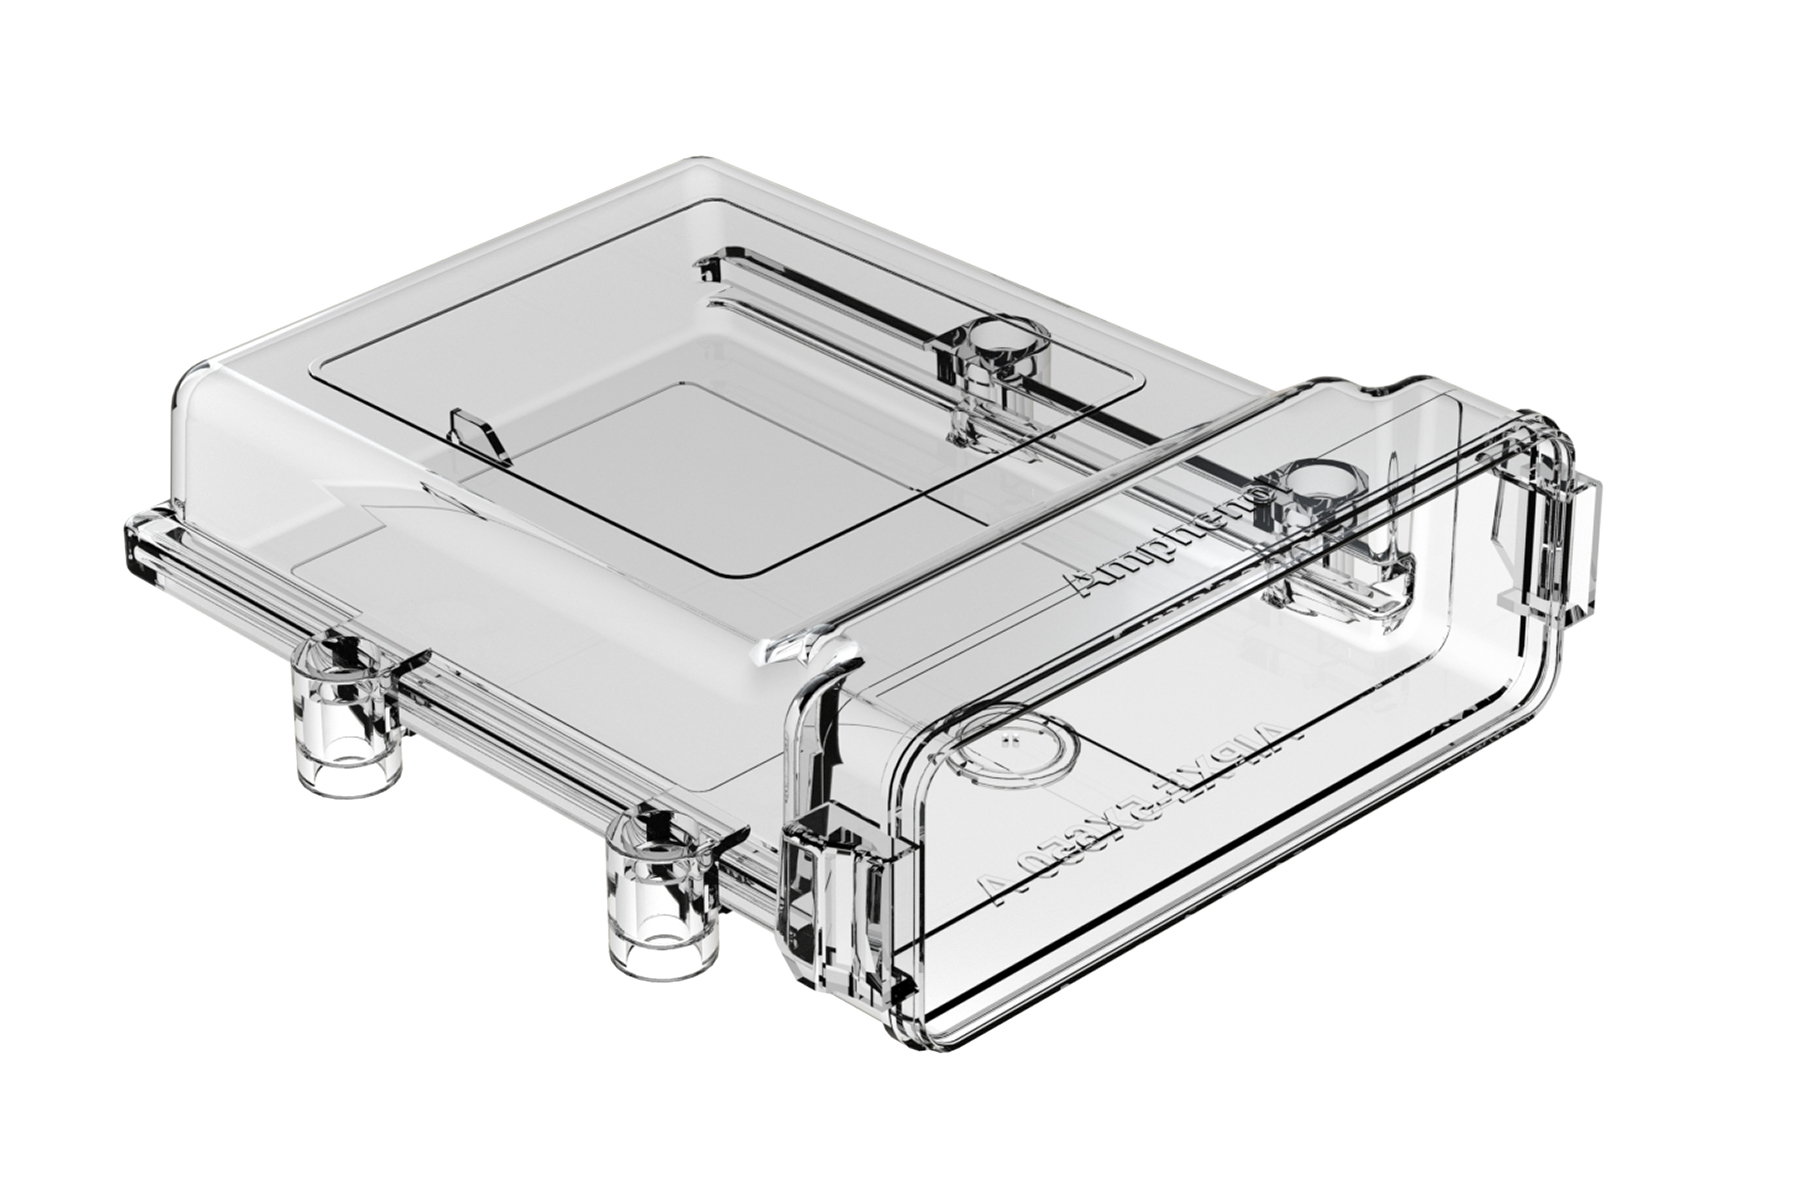 AIPXE-5X650A-E017  Clear AIPX  LARGE  Enclosure with Vent Hole